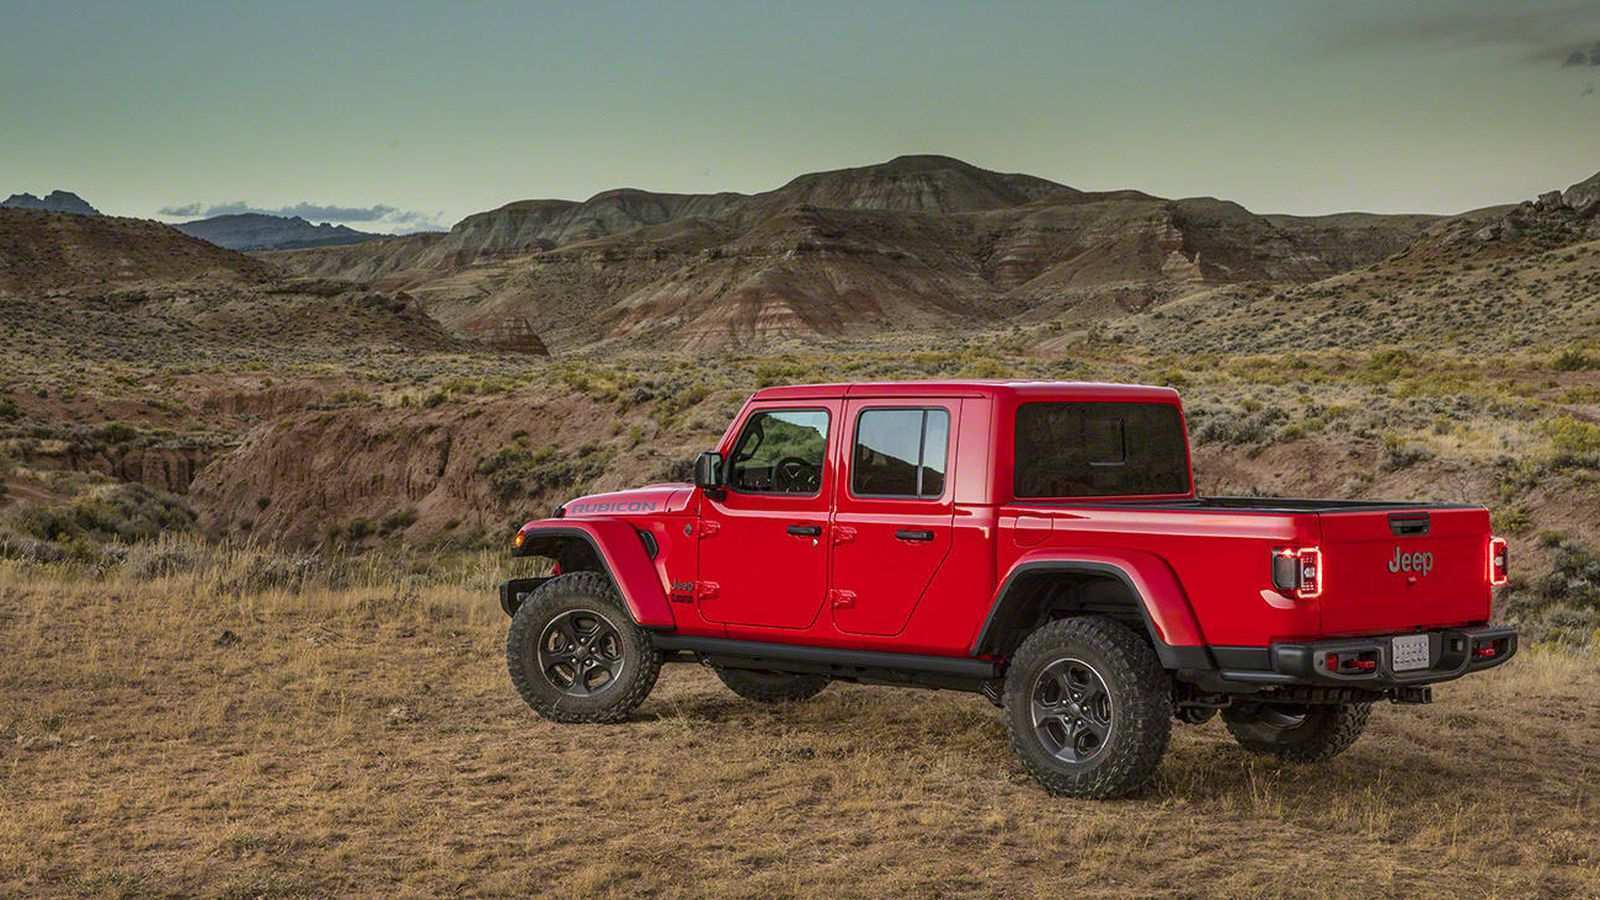 42 The Best Jeep Wrangler Pickup 2020 Release Date And Concept